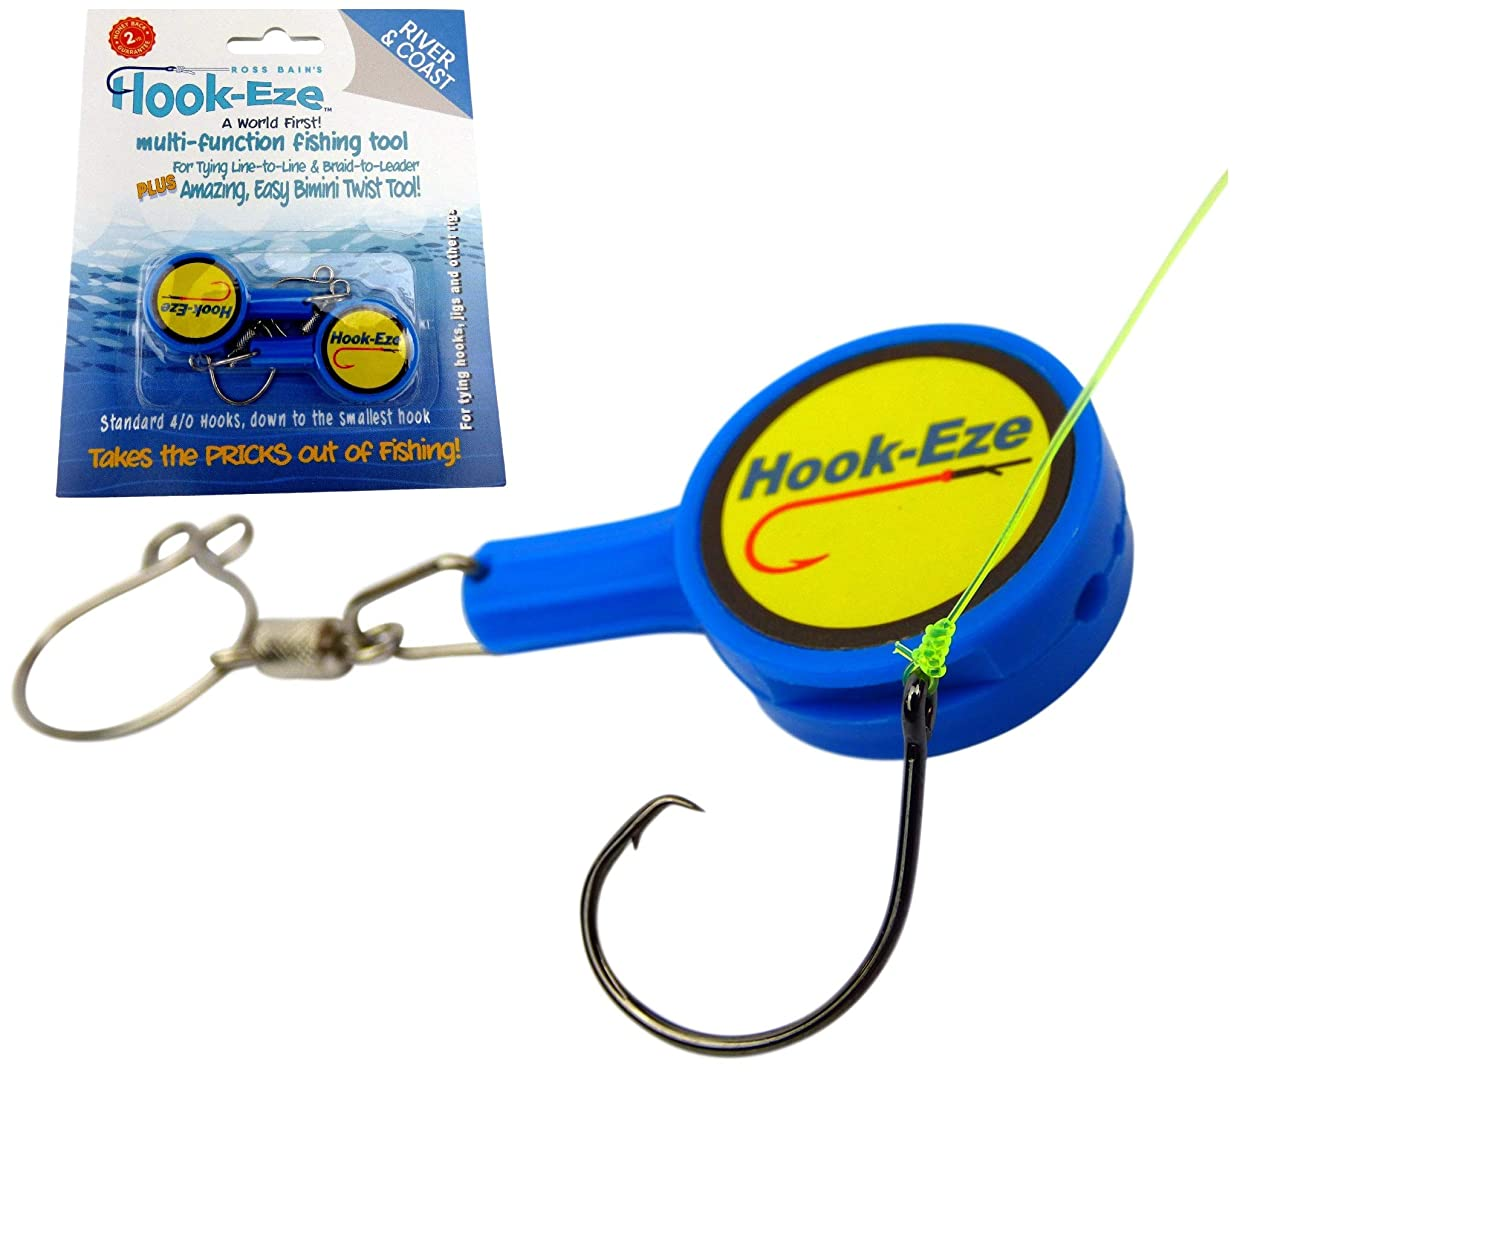 HOOK-EZE Quick Knot Tying Tool - Tie Fast Fishing Knots All in 1 | Safe  Hook Cover for Fishing Rods | Line Cutter | for Saltwater Freshwater Bass